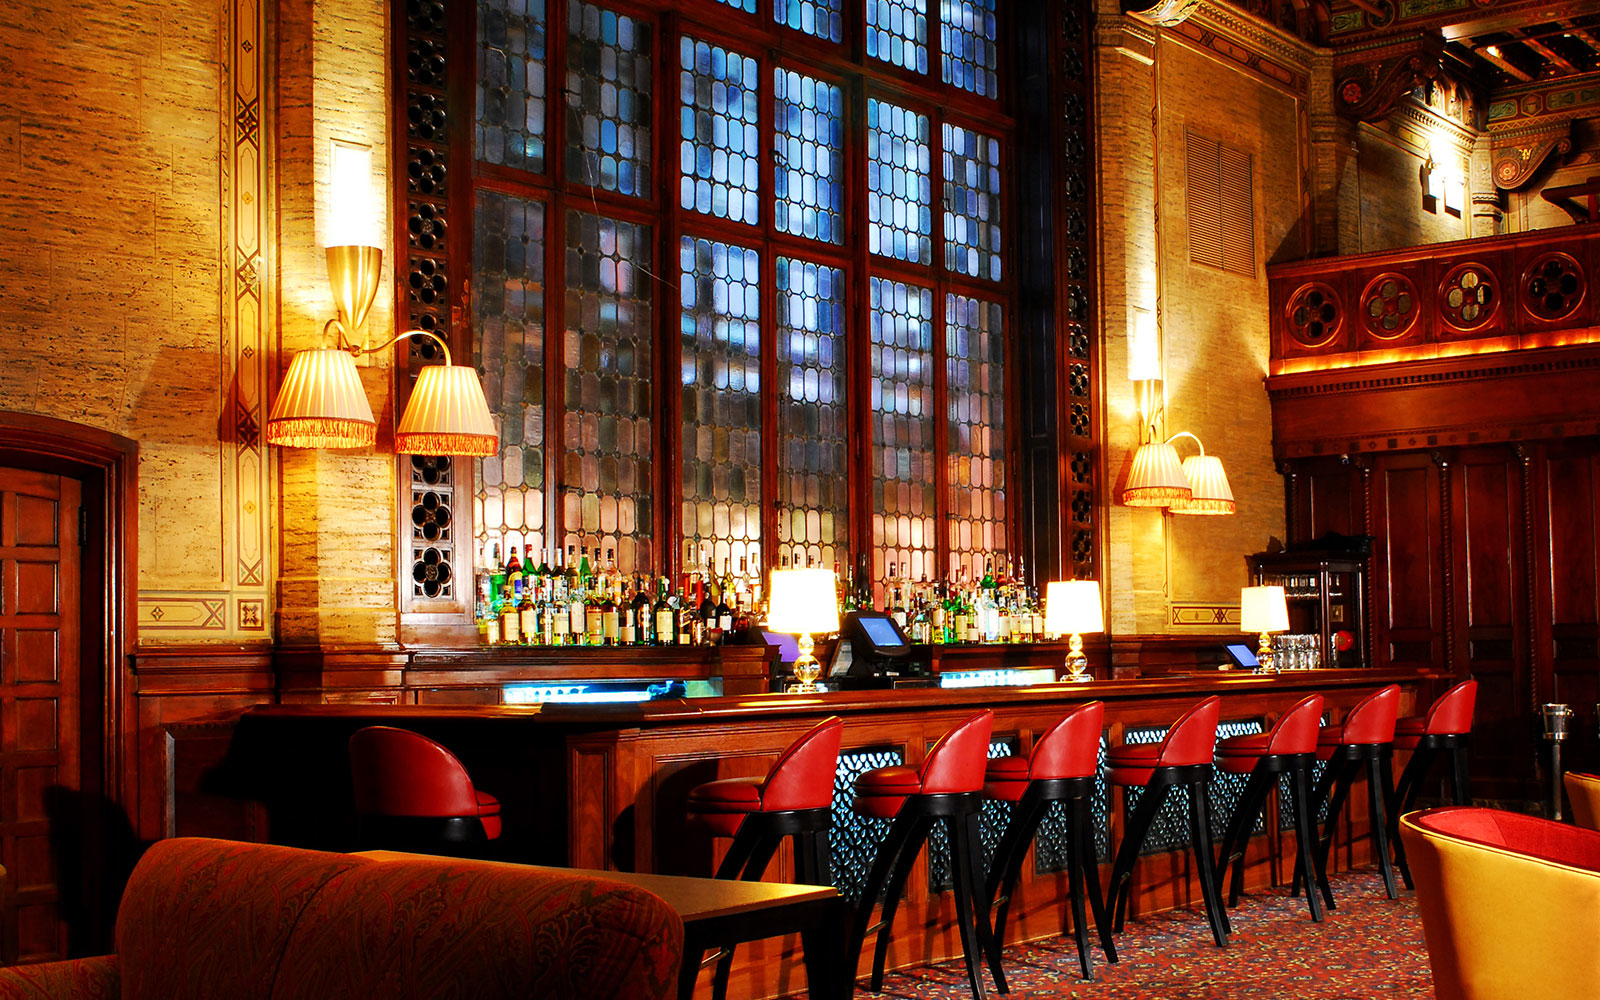 21 Best Bars in New York City - Condé Nast Traveler